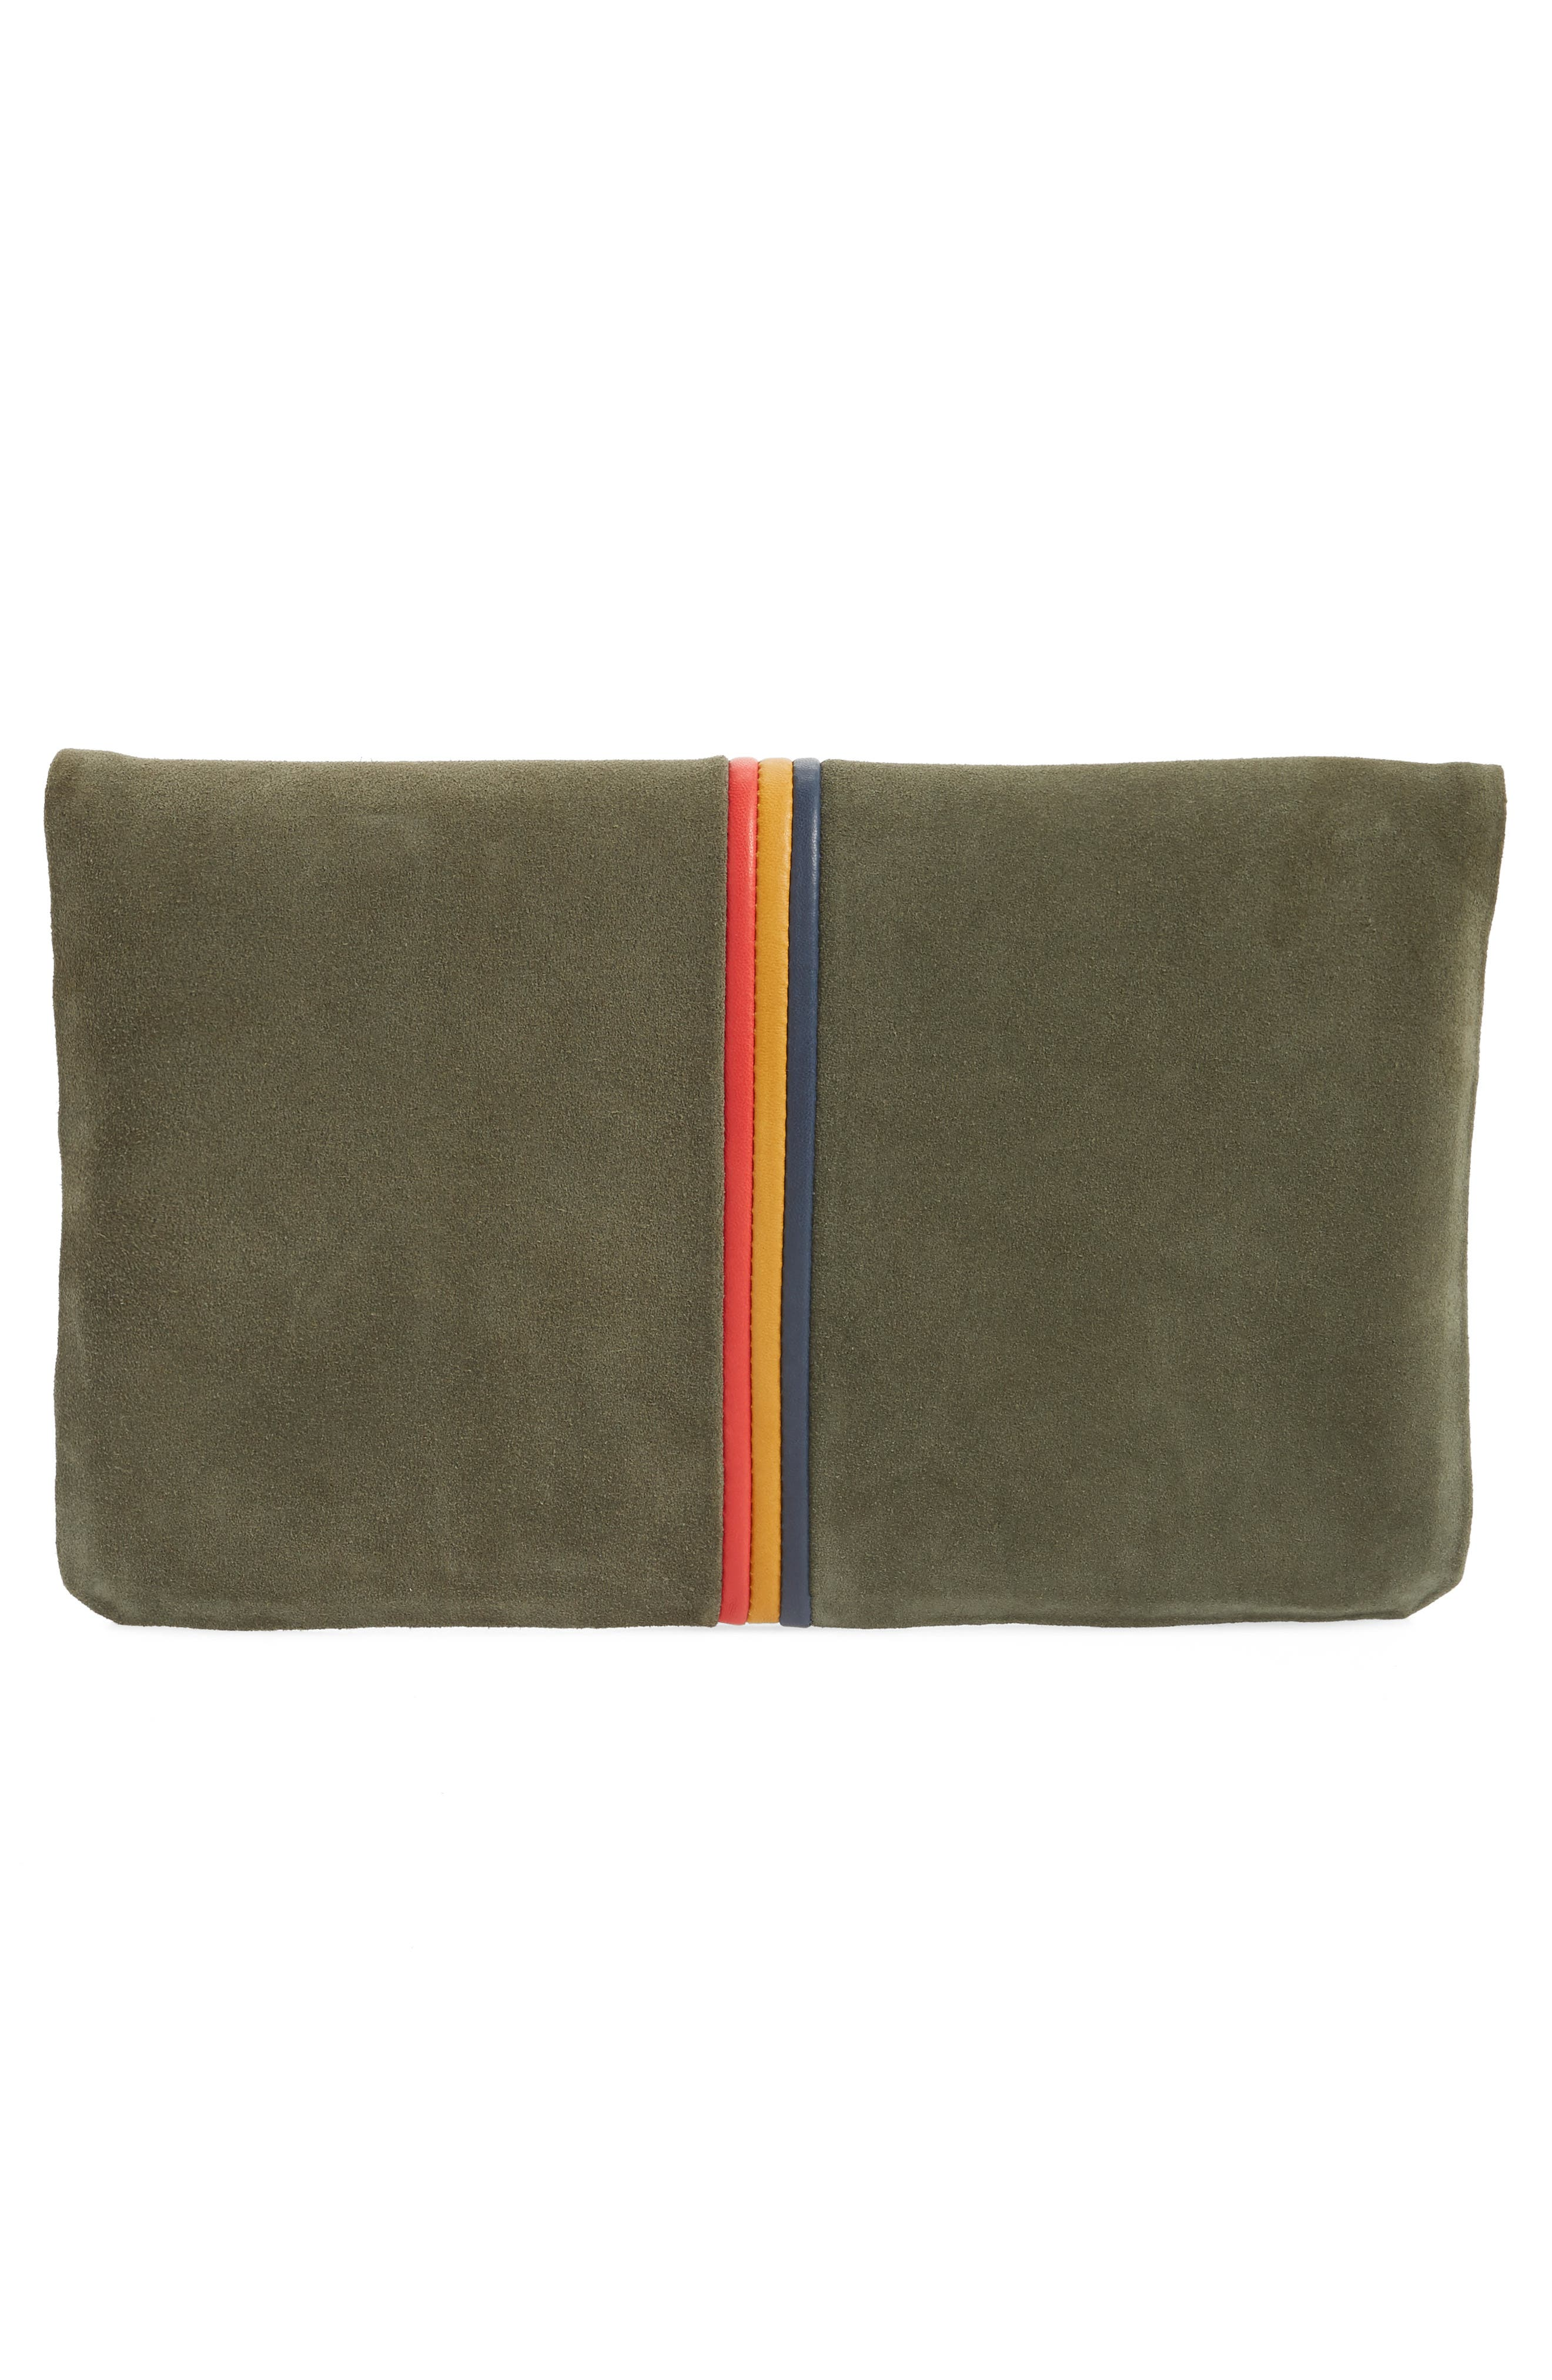 Center Stripe Nubuck Foldover Clutch,                             Alternate thumbnail 3, color,                             ARMY SUEDE STRIPE